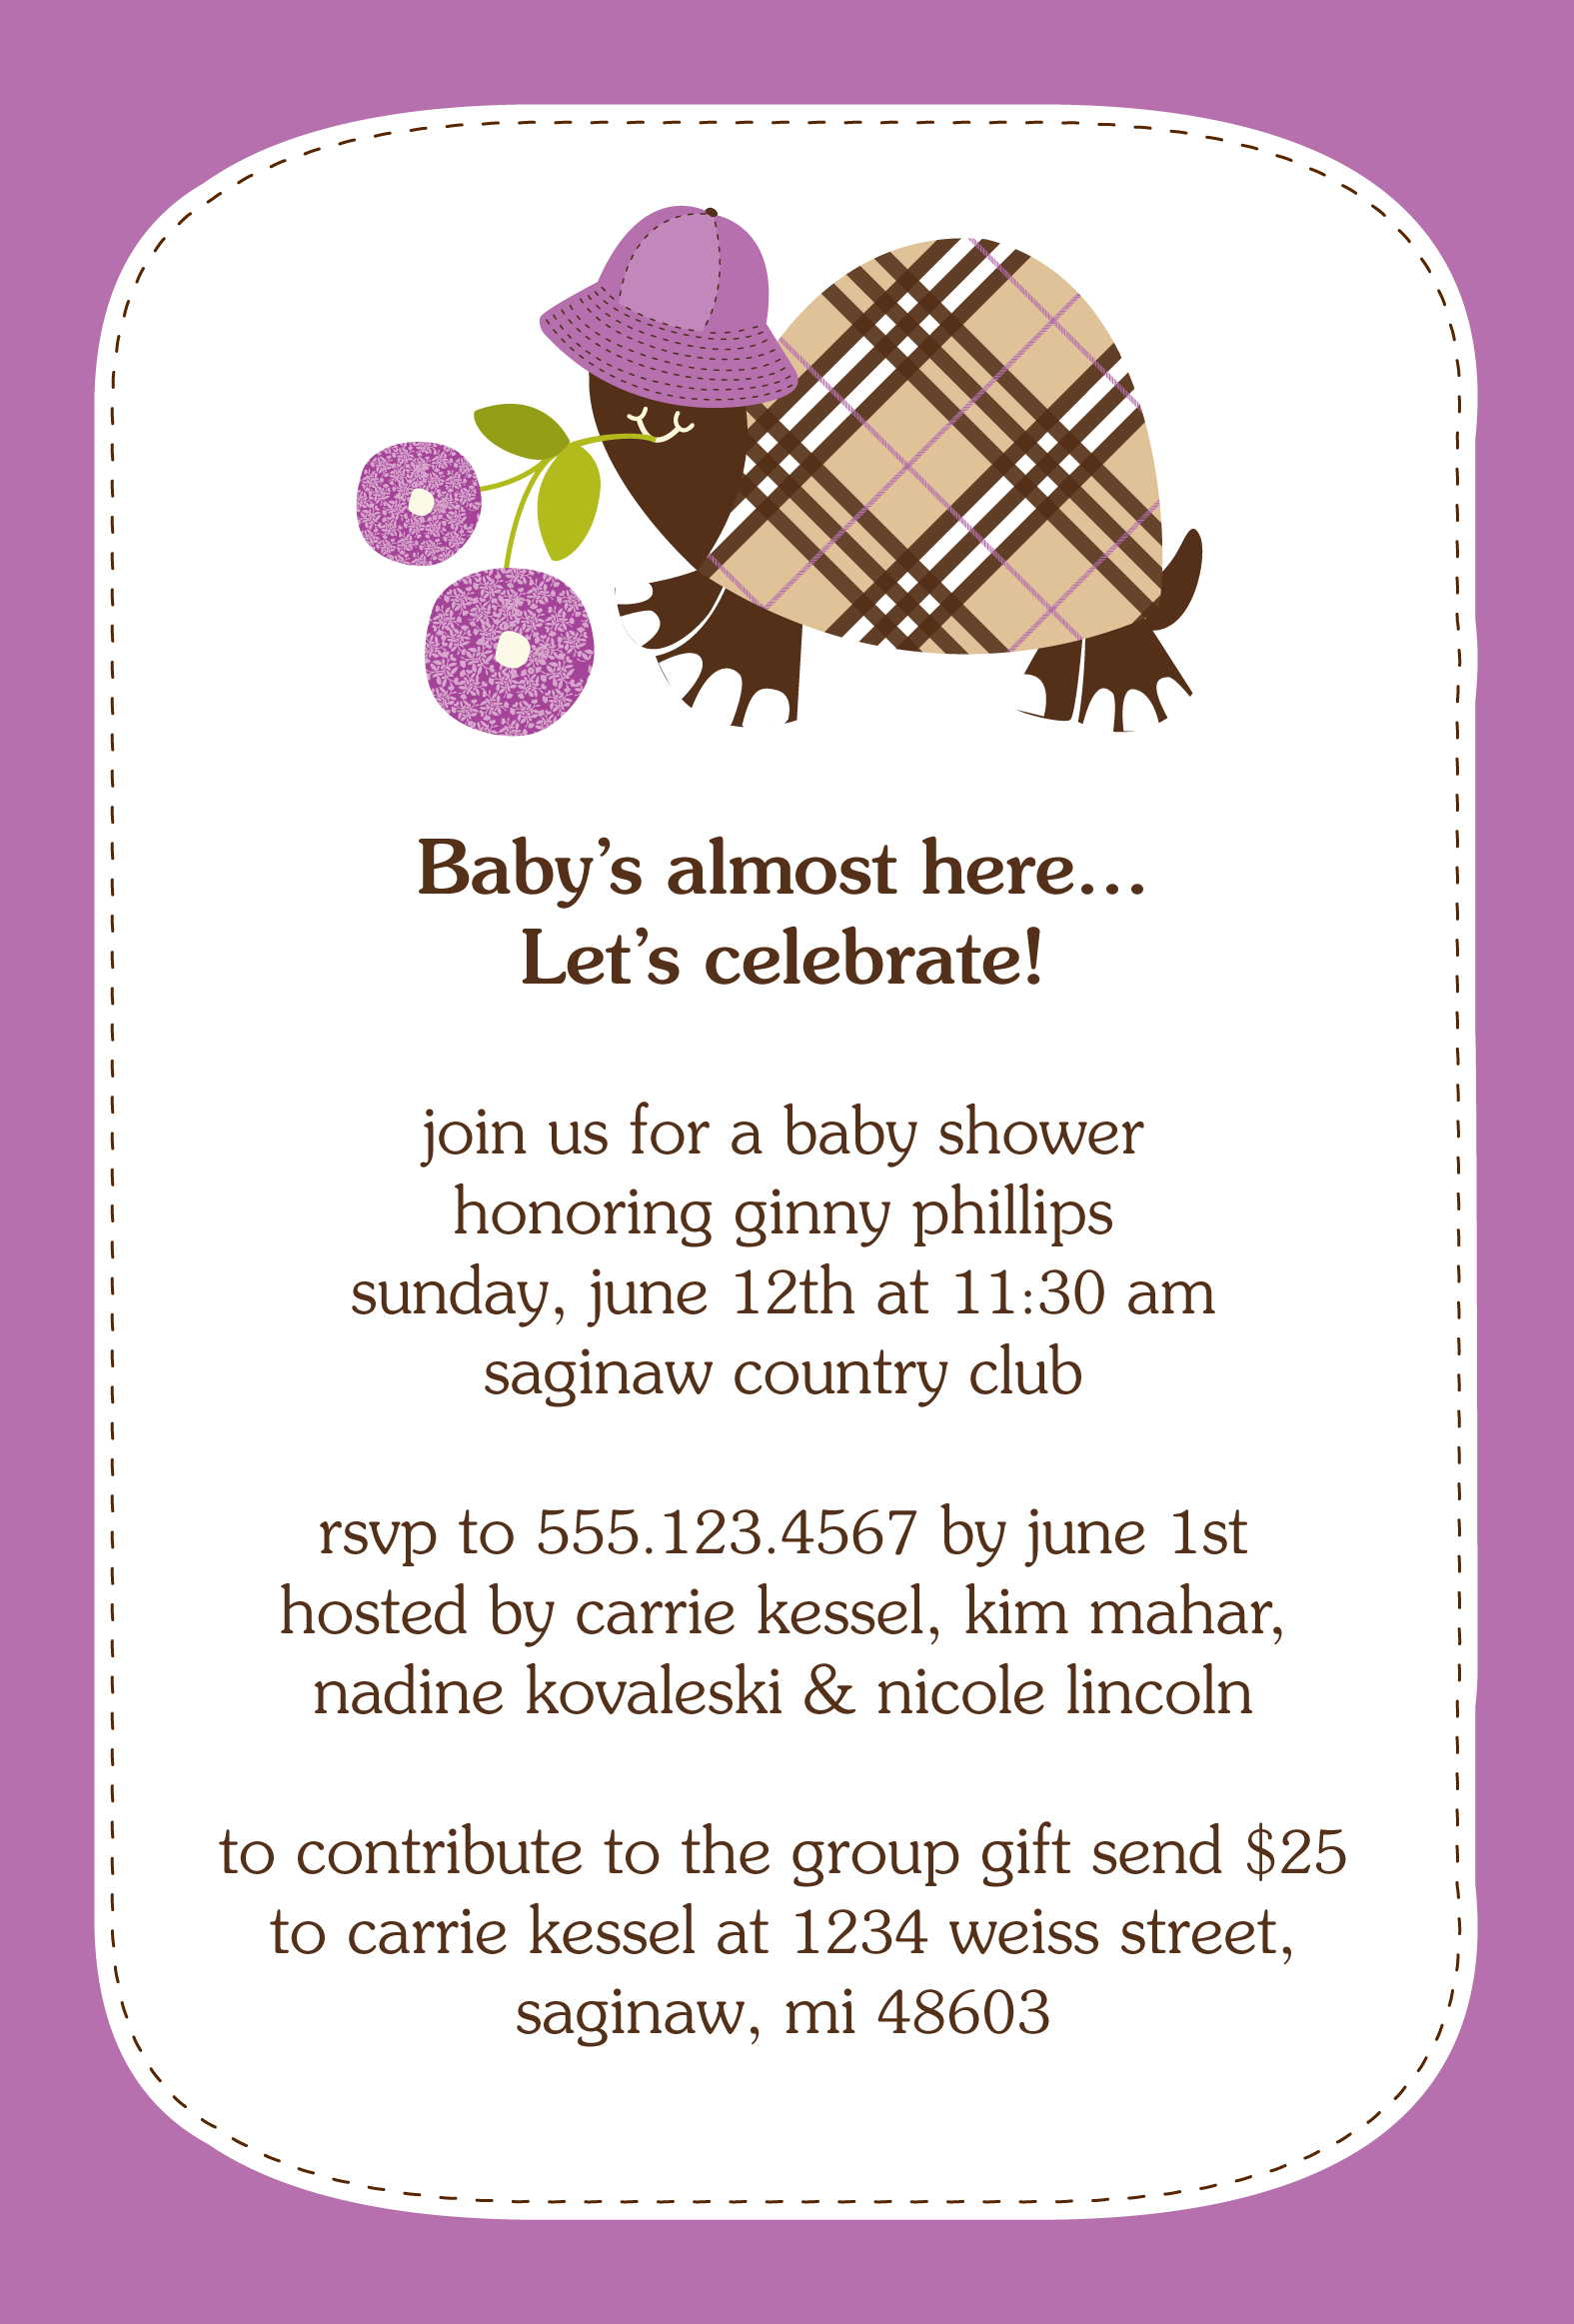 Full Size of Baby Shower:baby Shower Halls With Baby Shower At The Park Plus Recuerdos De Baby Shower Together With Fun Baby Shower Games As Well As Baby Shower Hostess Gifts And Baby Shower Verses Recuerdos De Baby Shower Baby Favors Baby Shower Snapchat Filter Baby Shower Adalah